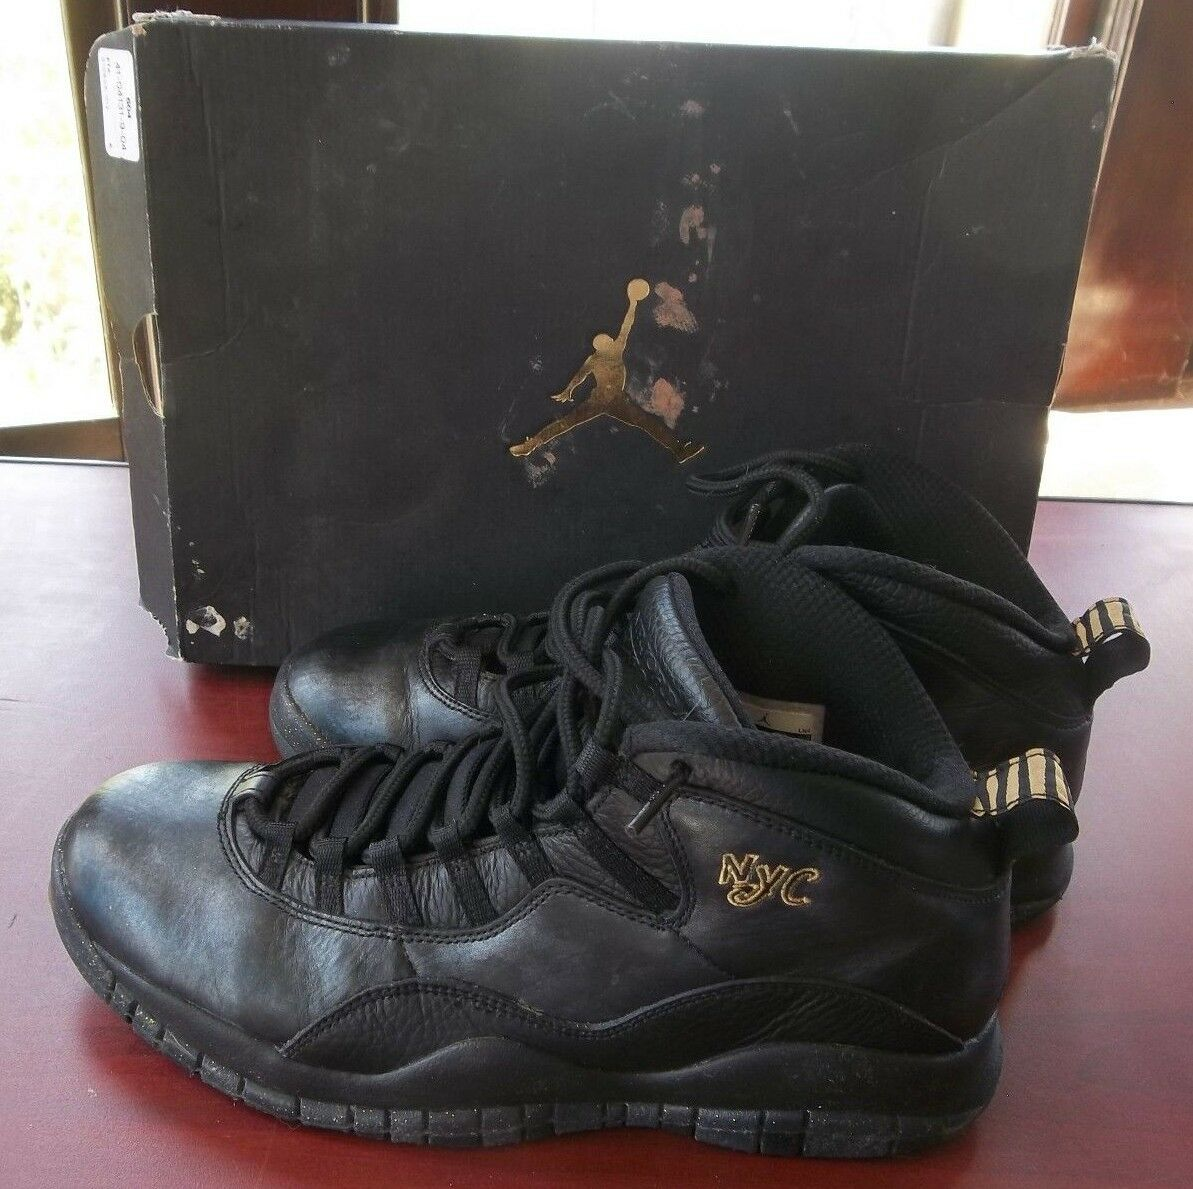 Nike AIR JORDAN 10 Retro DISCOUNT HIGHTOP KICKS Size 10 Mens Original Box NYC